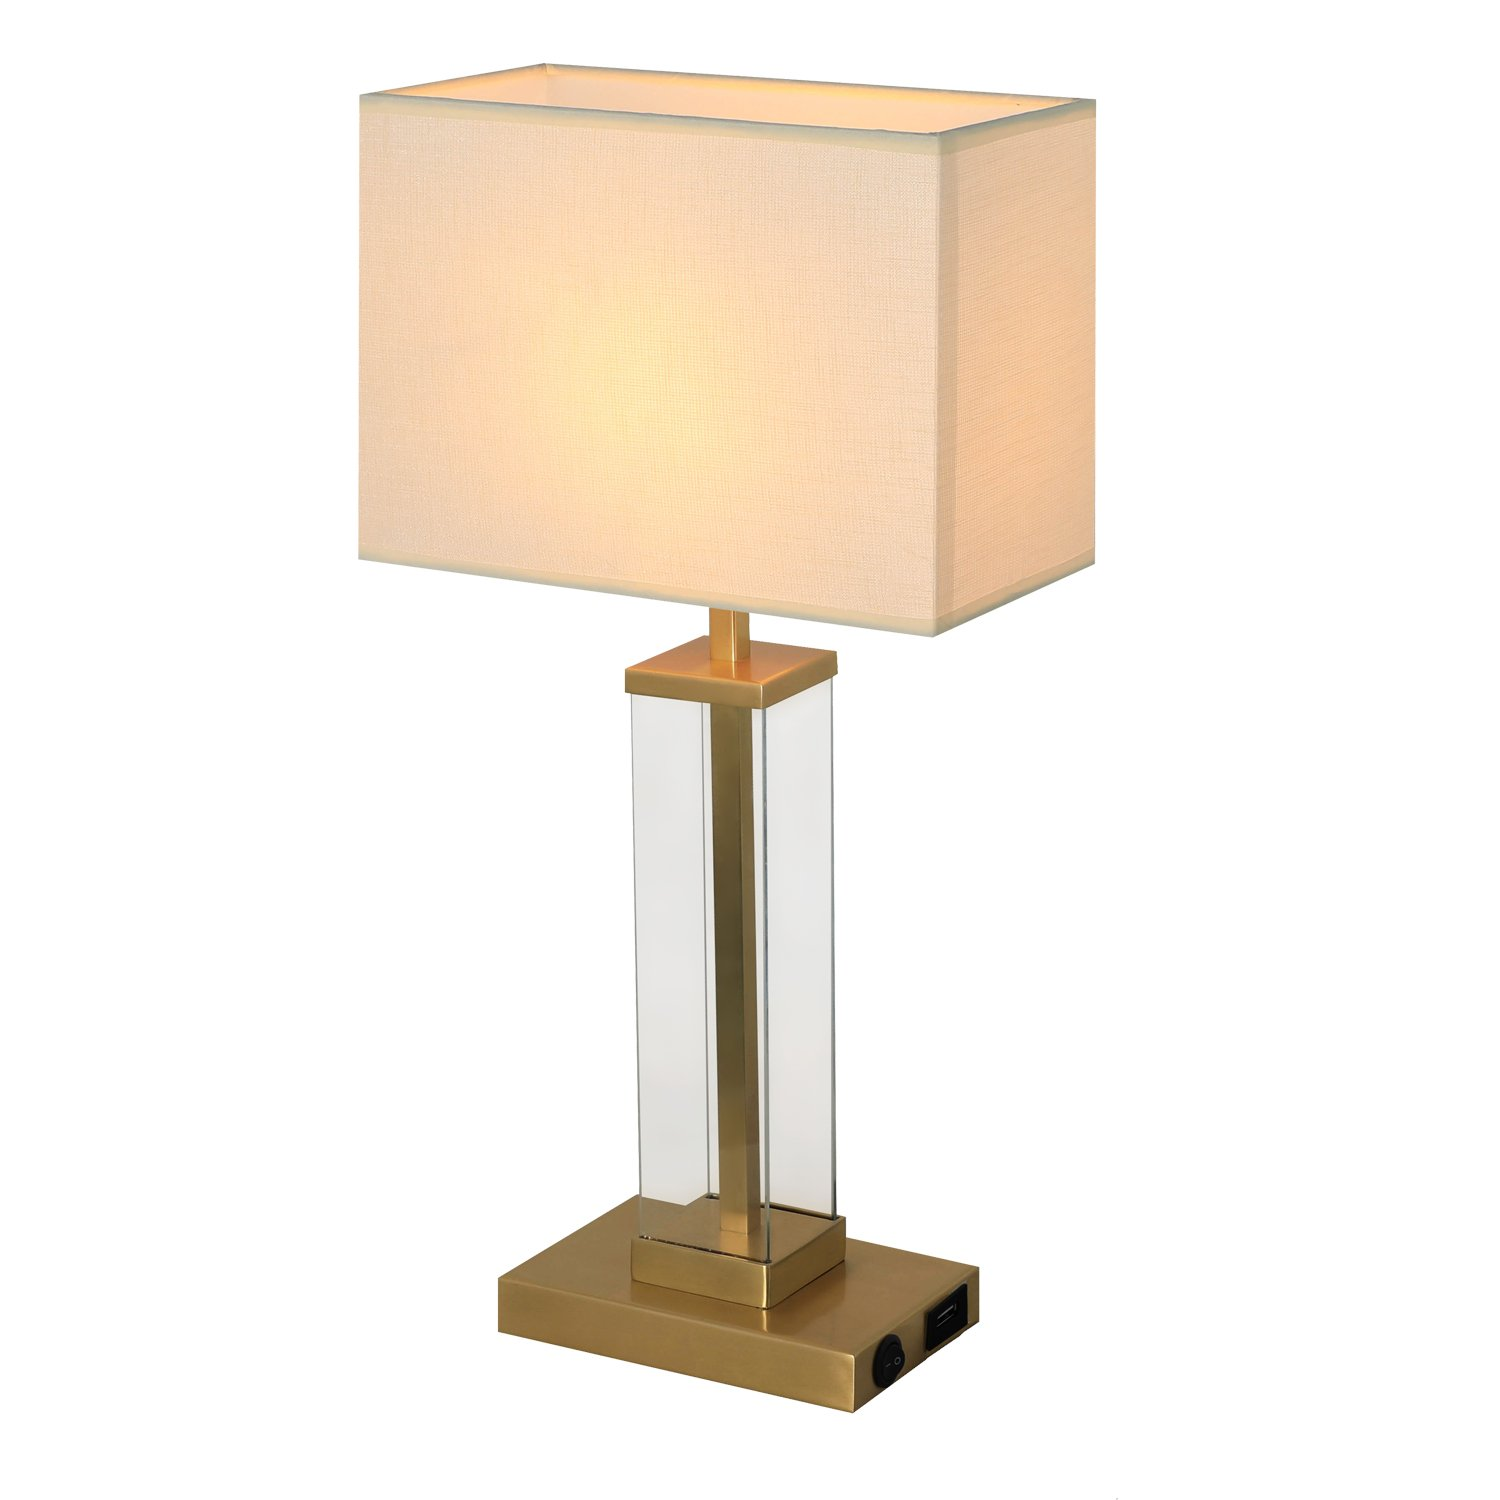 Brass Table Lamp, HOMPEN Desk lamp with Build-in 5V/2A USB Charging Port, Pure Brass Base with Glass Panels Framed, Cream Lamp Shade